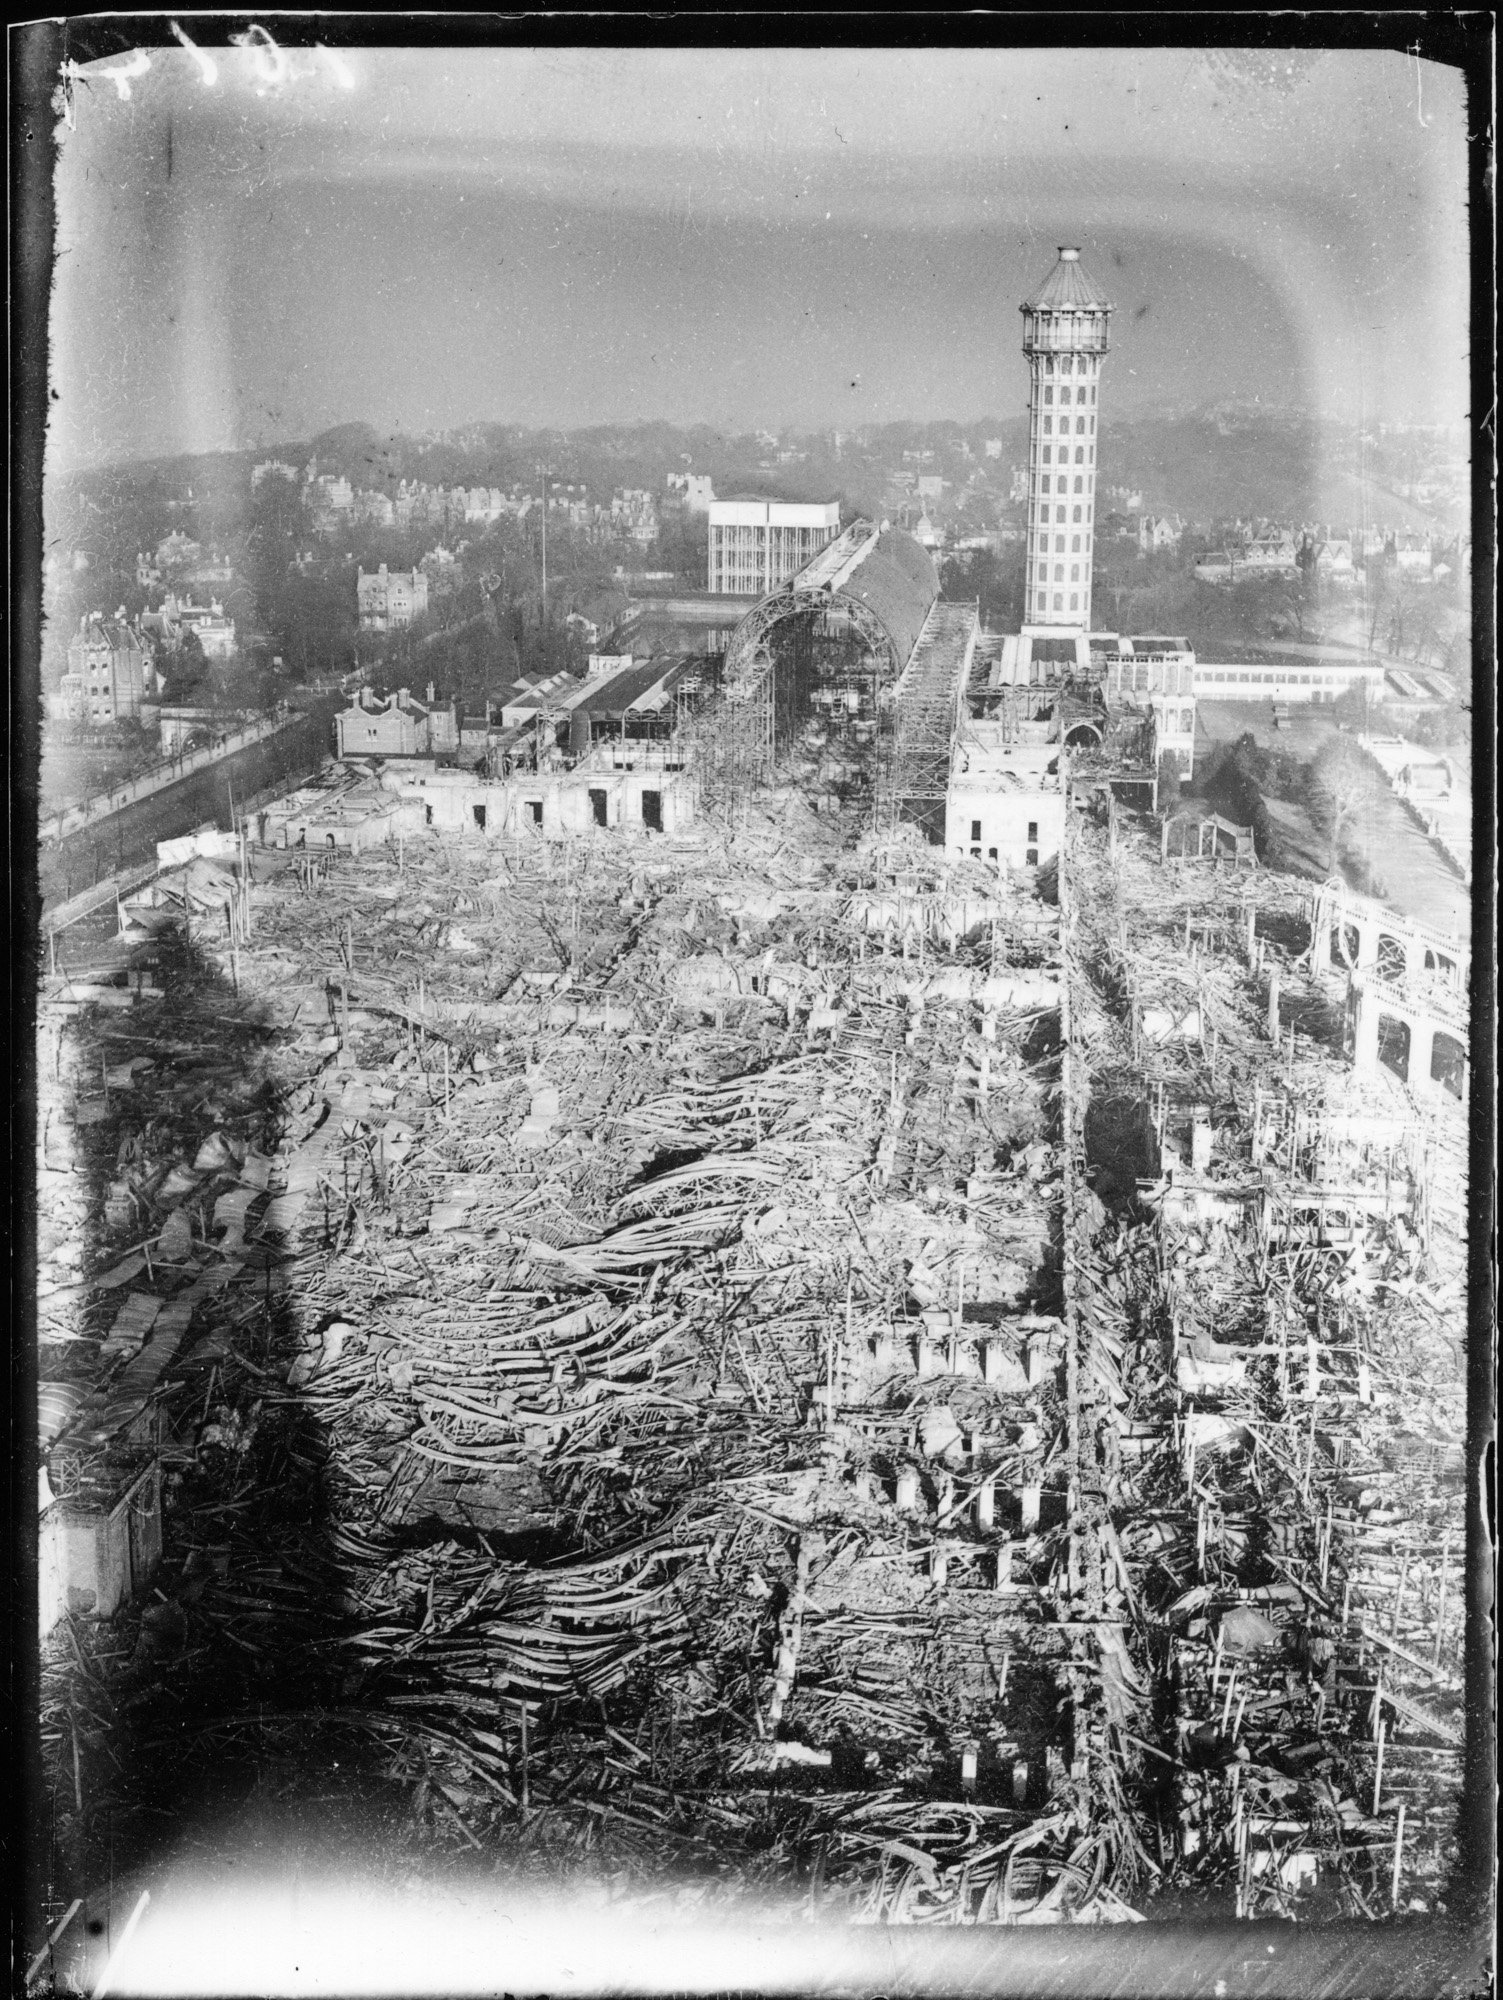 Crystal Palace fire aftermath, December 1936 - photographer unknown (William Mokrynski Collection)